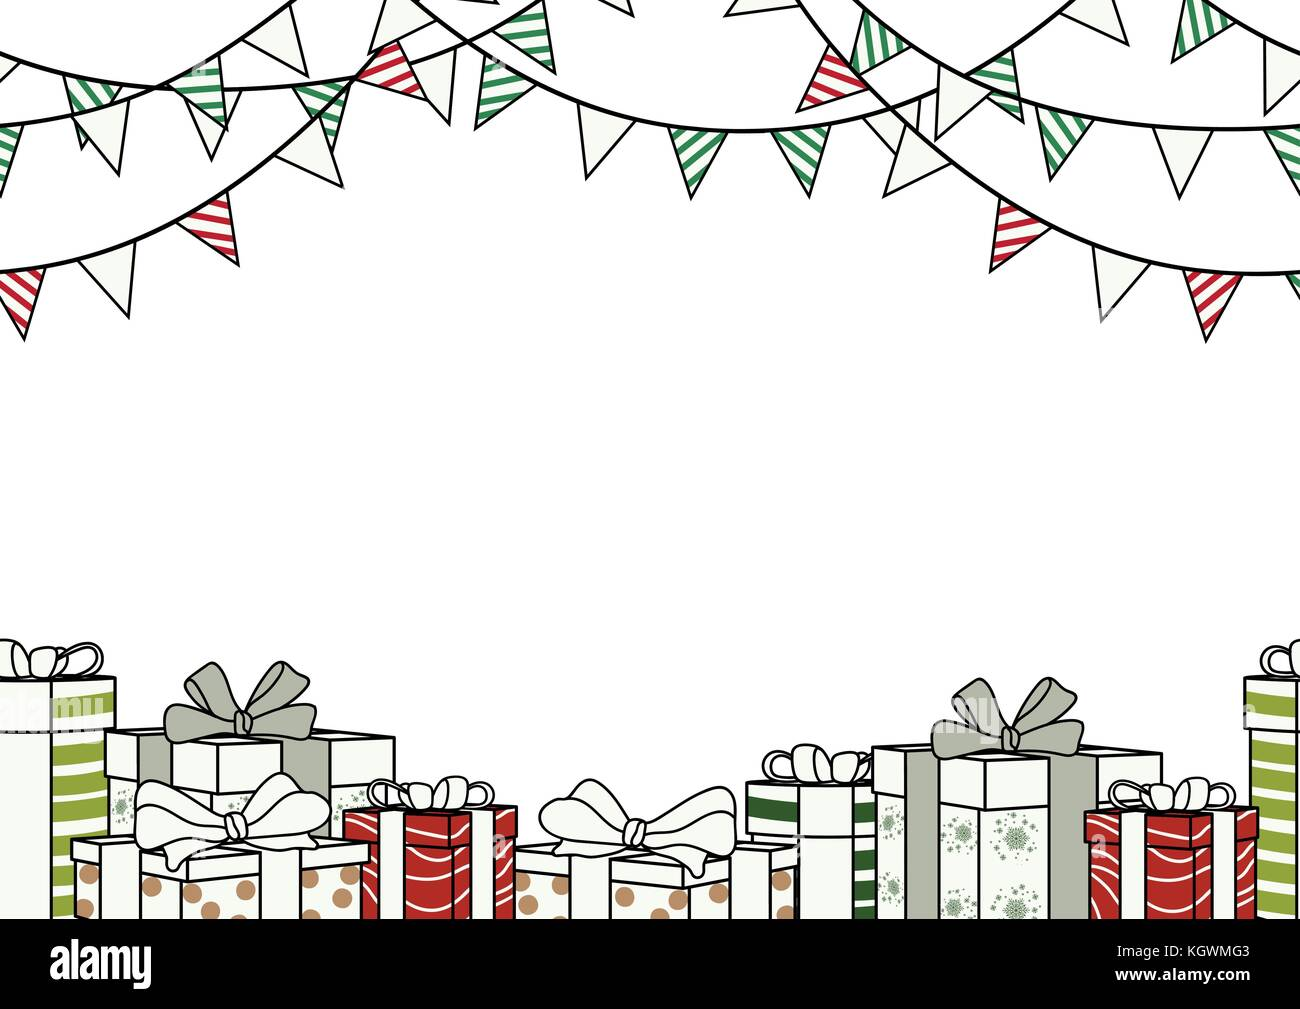 poster design for christmas new year or party in simple flat style with blank space for text seamless background design in colorful with party flag